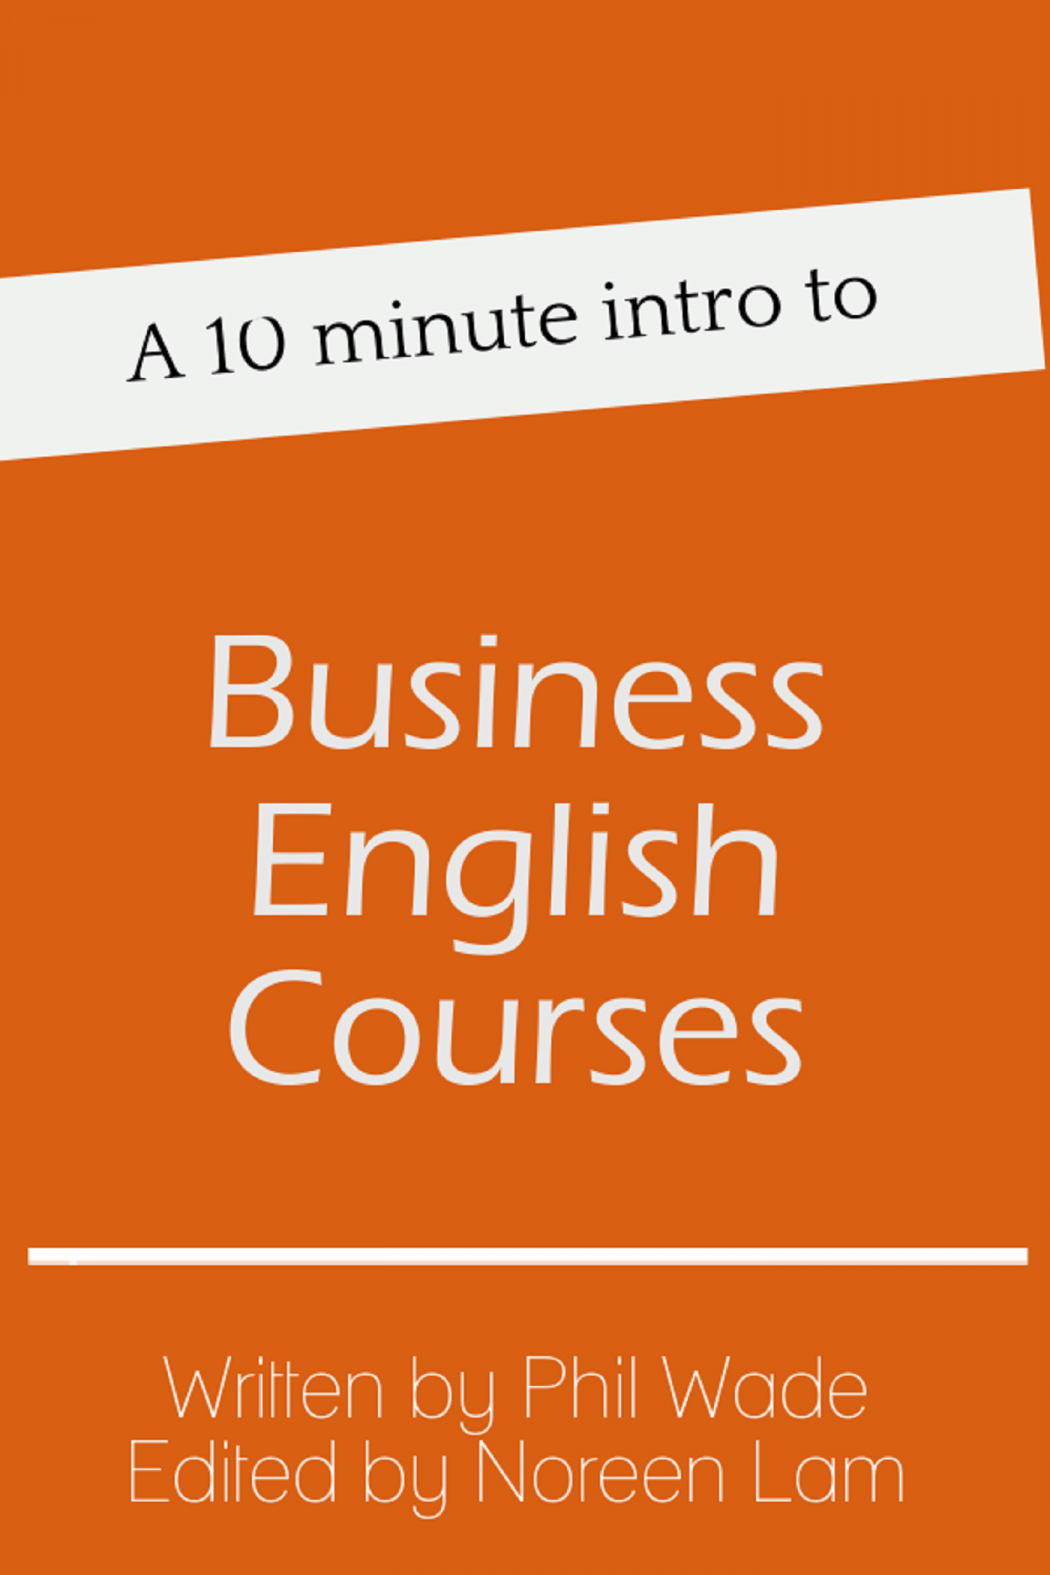 course work in introduction to business Upon completion, students should be able to work as contributing members of a   this course provides an introduction to the principles of entrepreneurship.